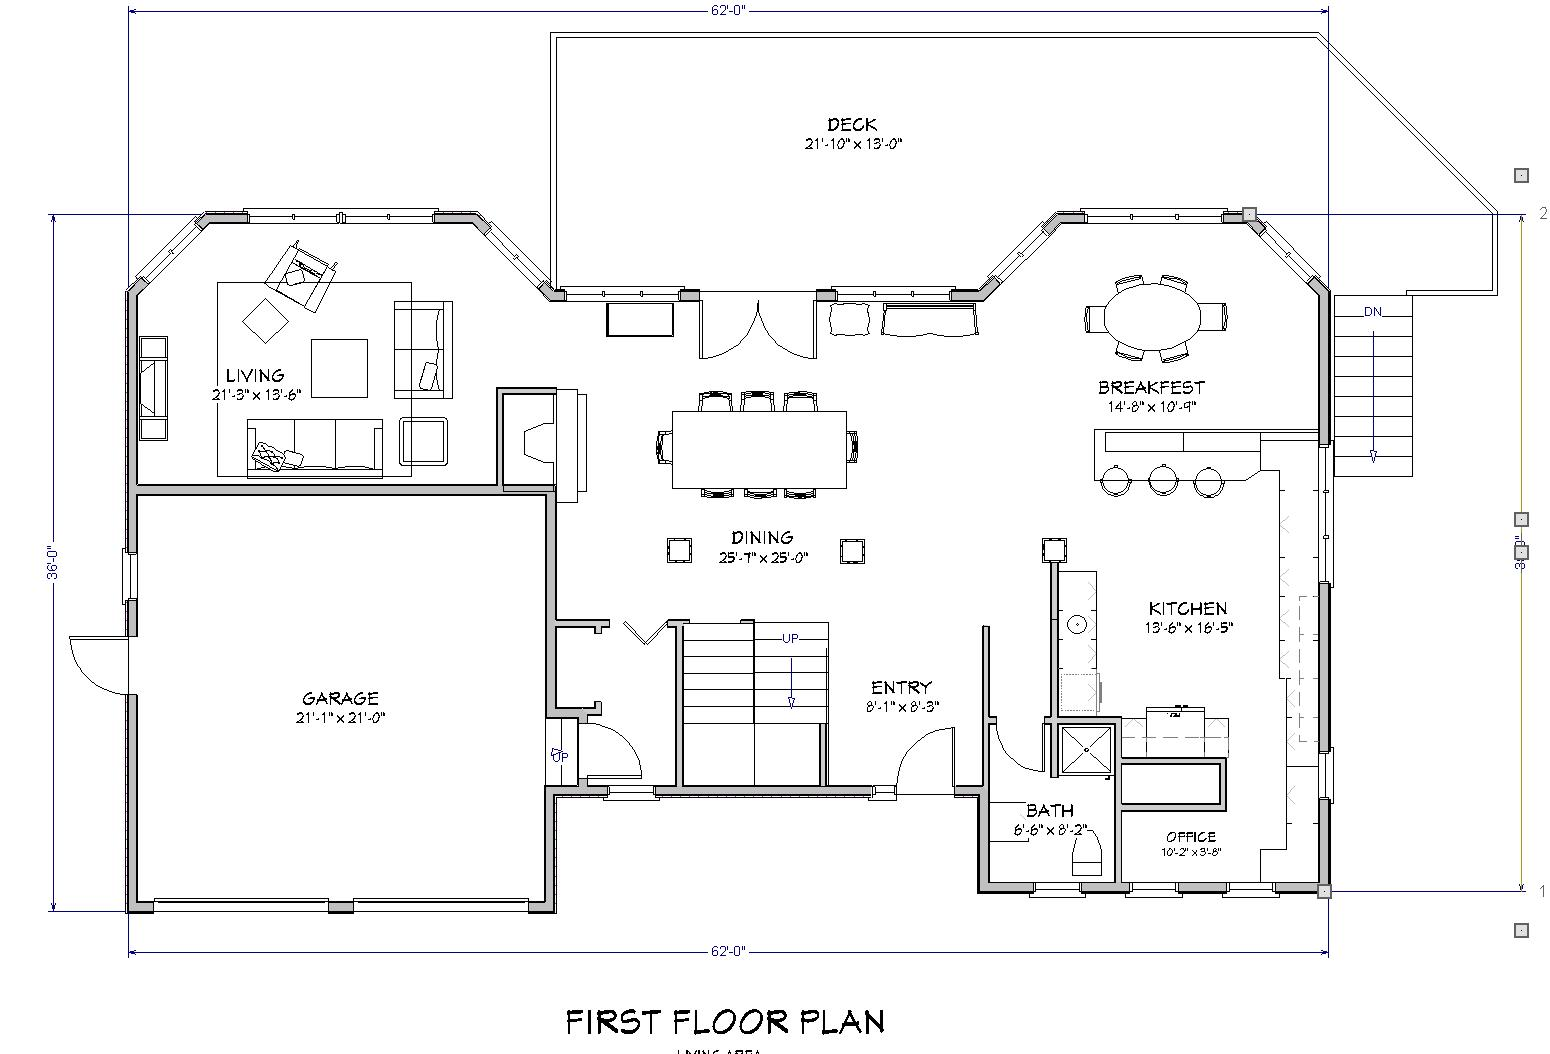 Plan, Lake House Plan, Cape Cod Beach House Plan : The House Plan Site